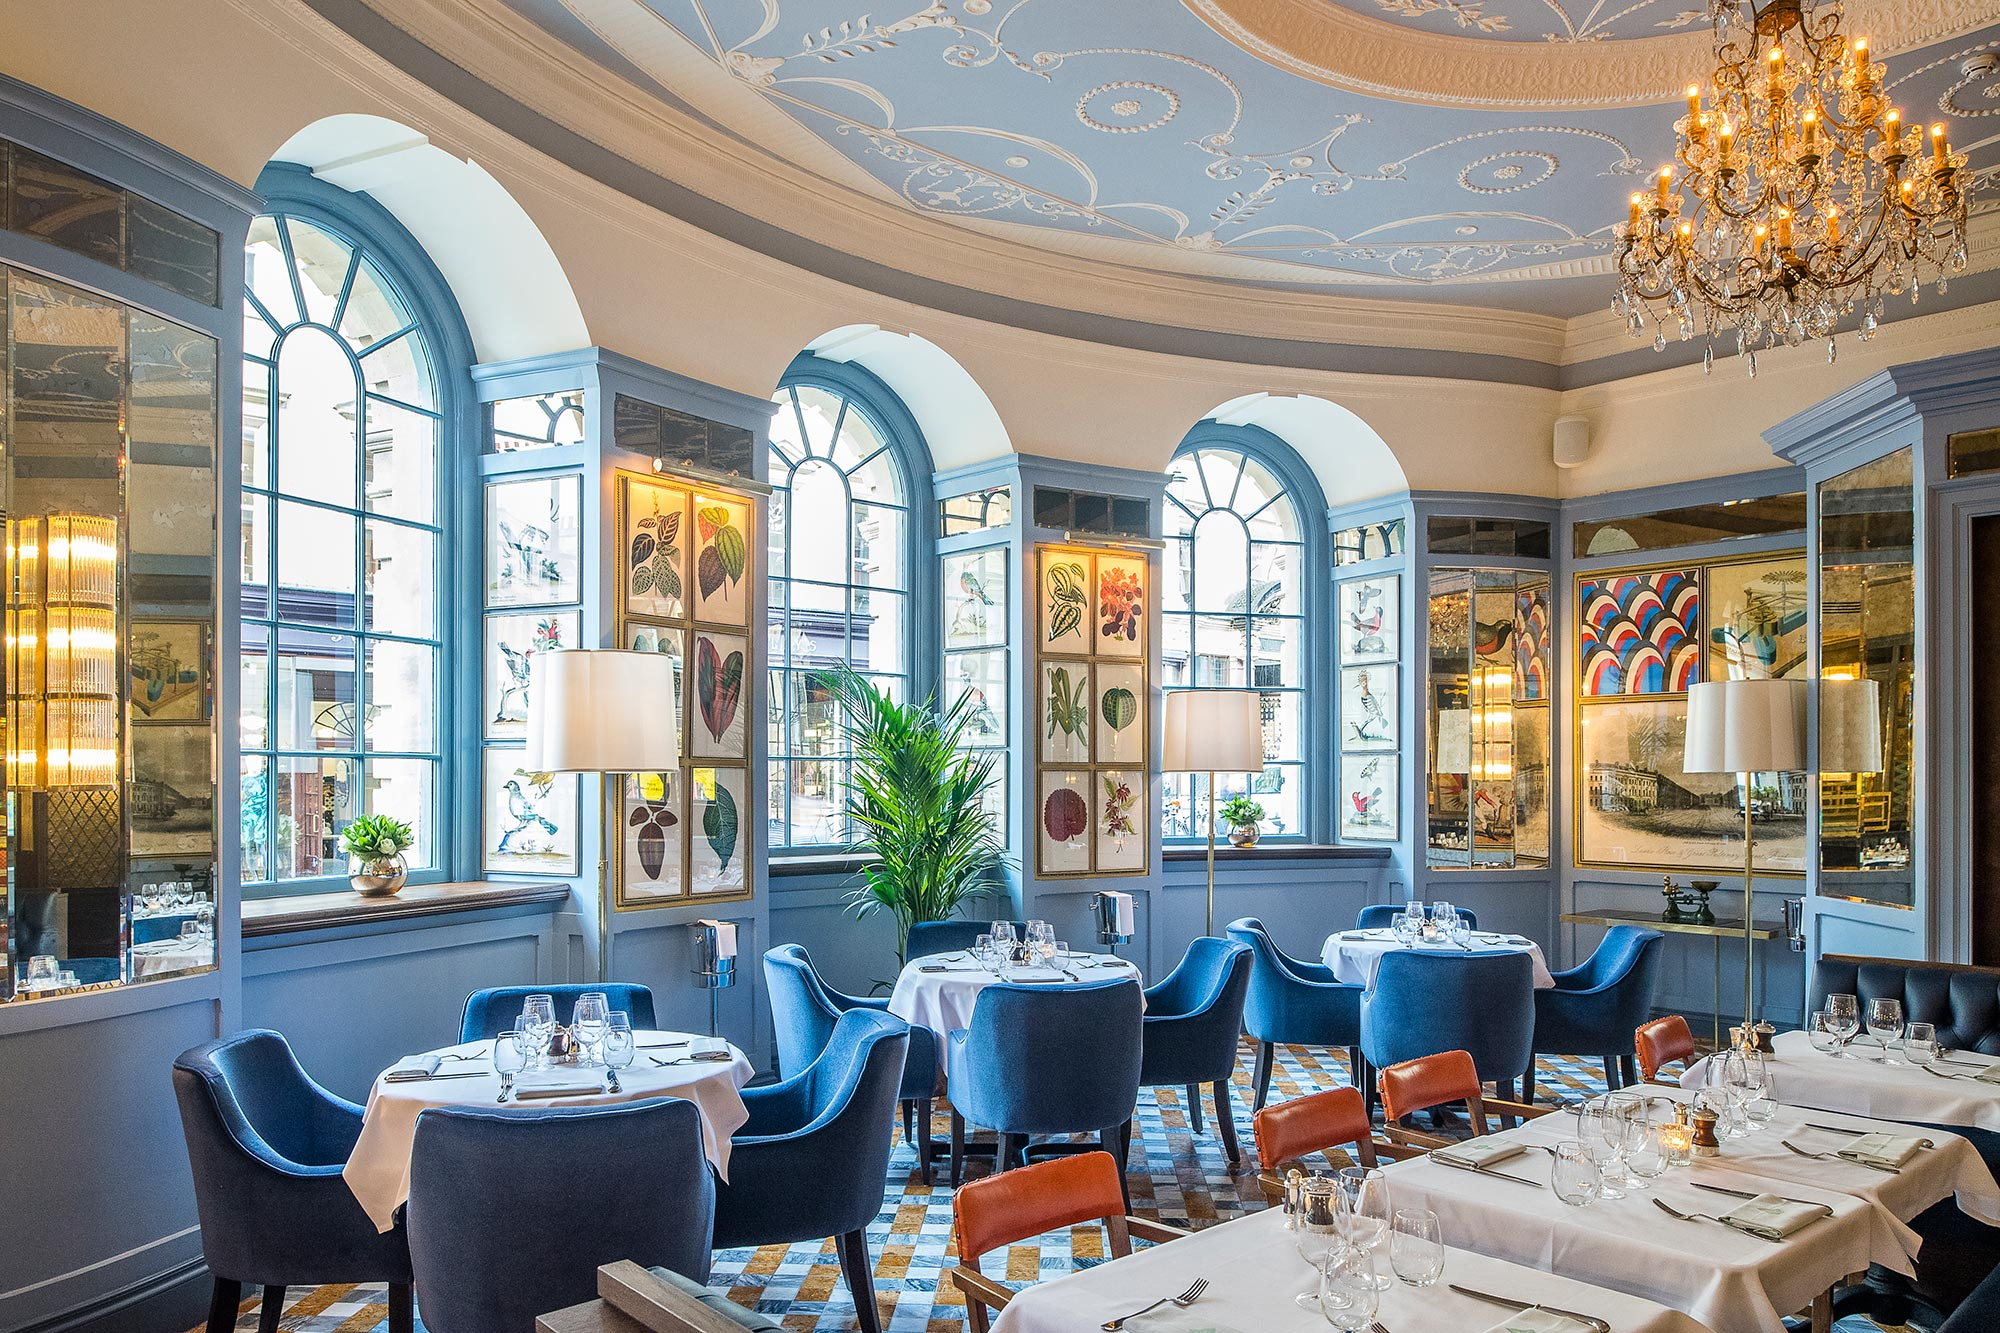 Restaurant in Bath City Centre, The Ivy Bath Brasserie - The Ivy Bath Brasserie